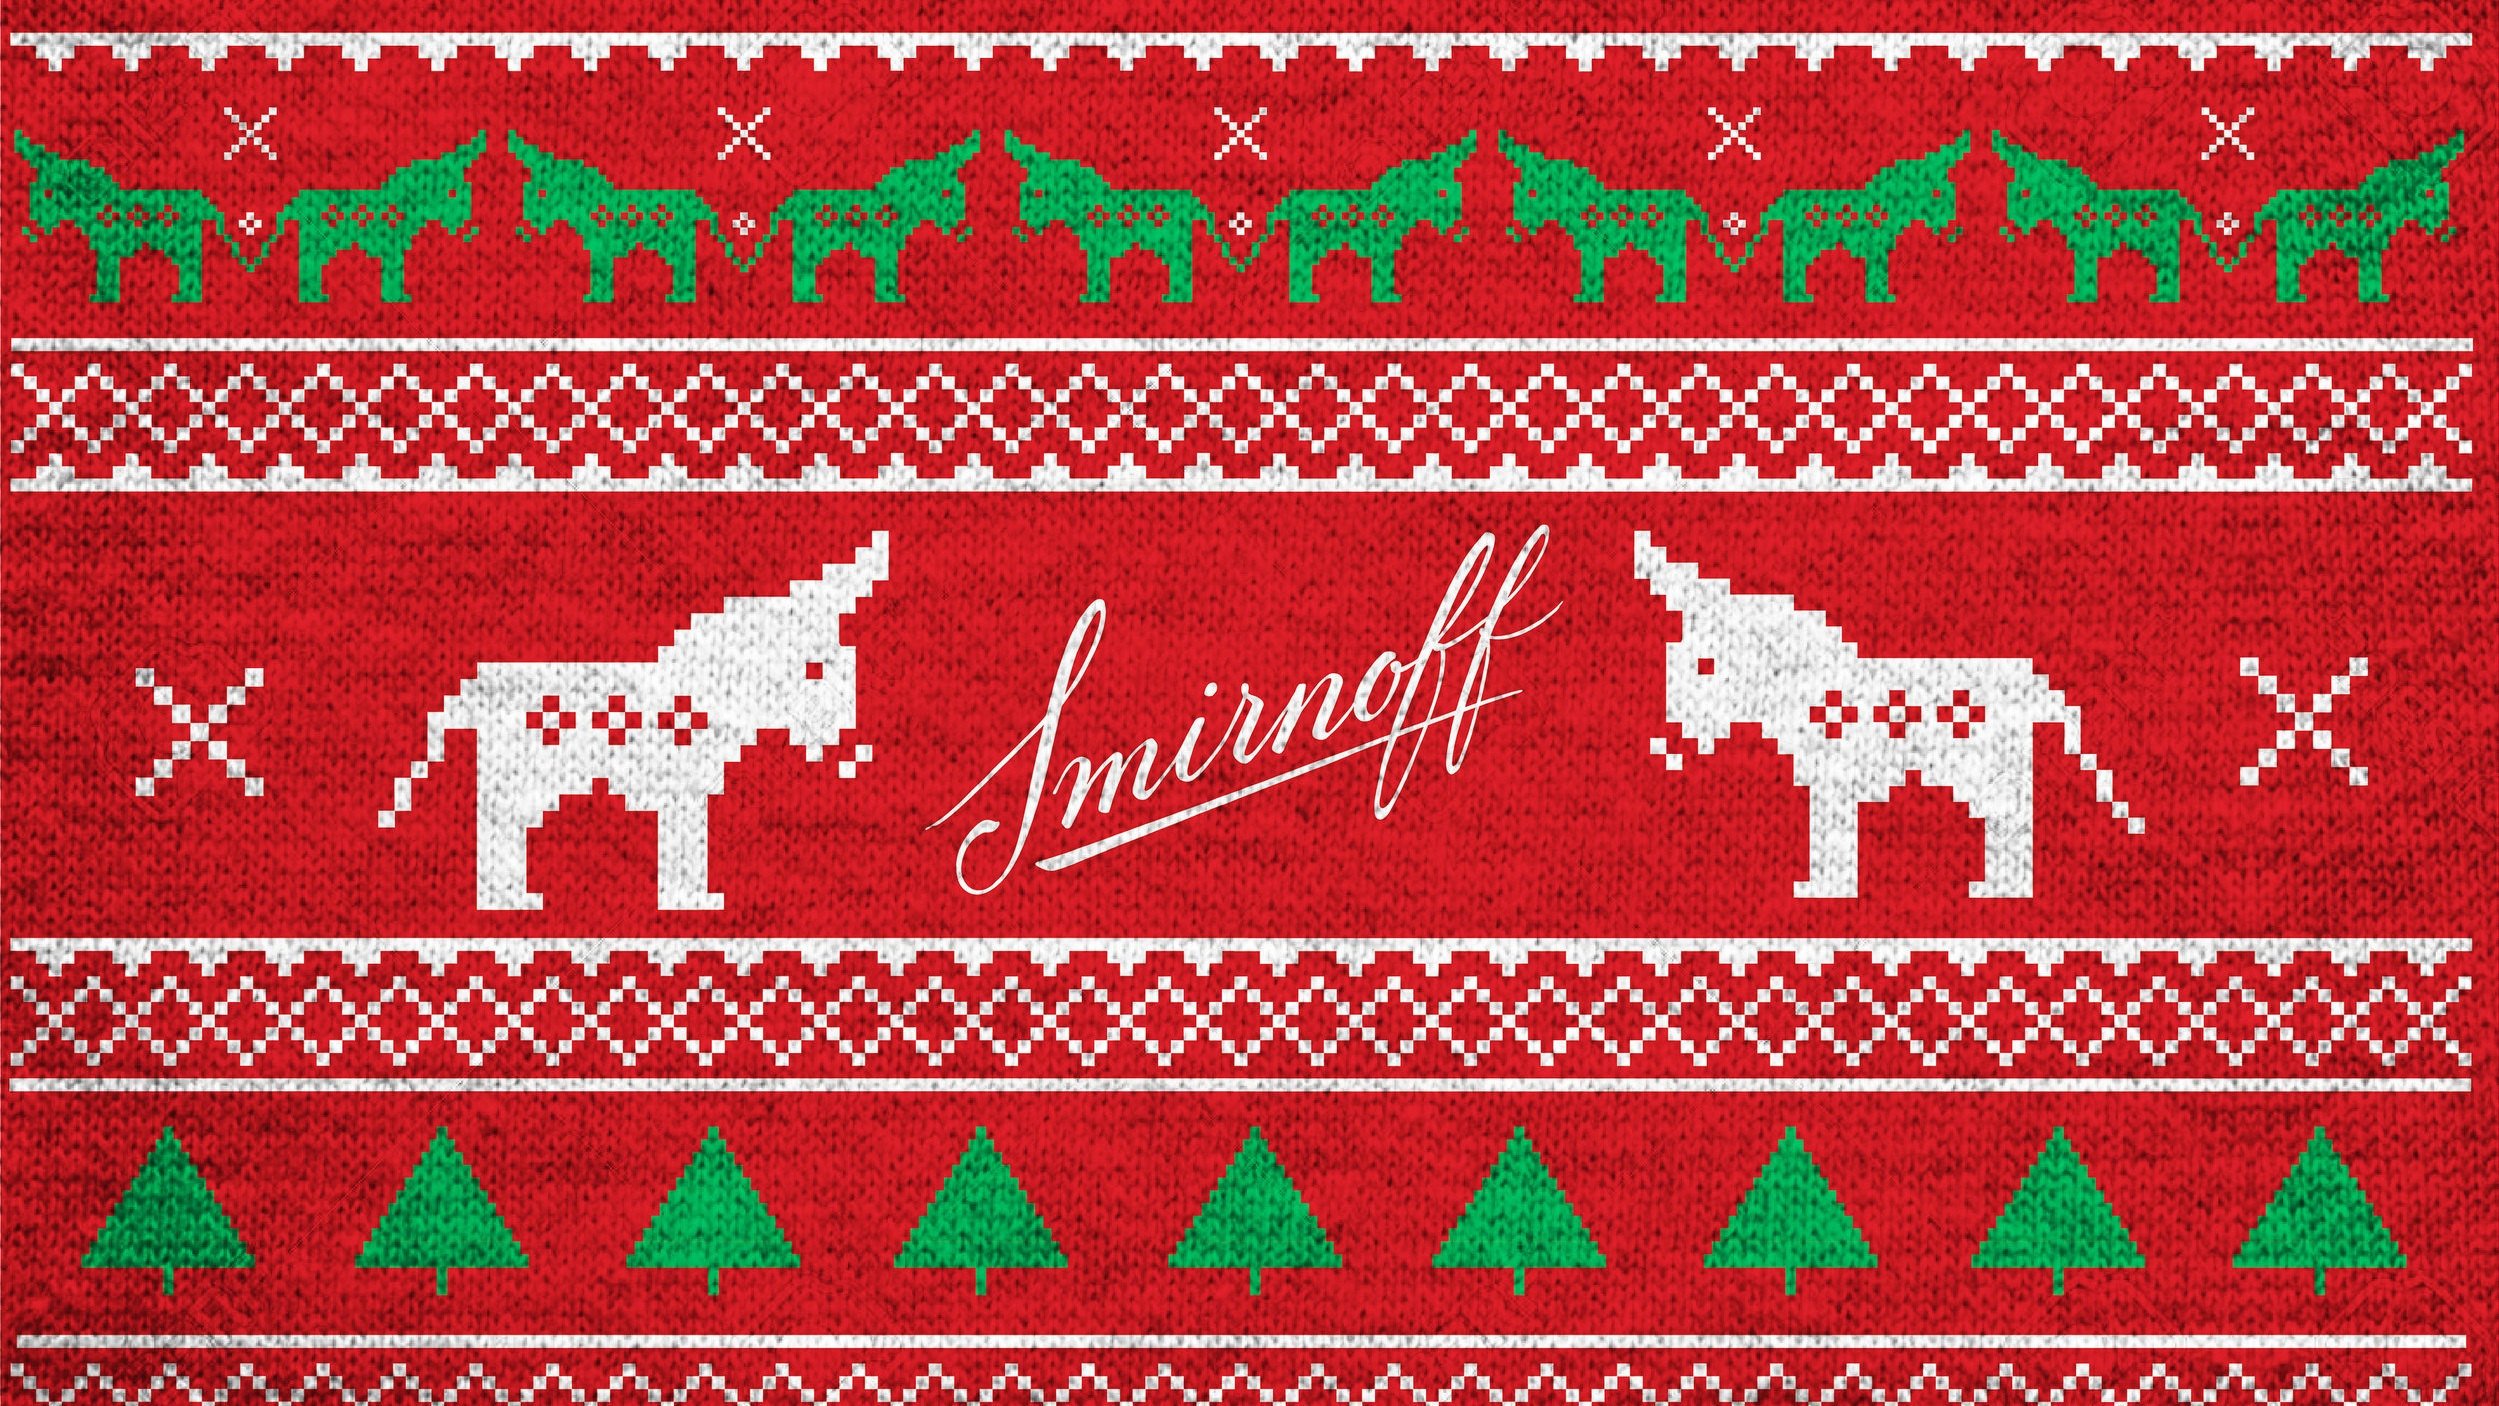 SMIRNOFF - HOLIDAY MULE UGLY SWEATER - Textile Design